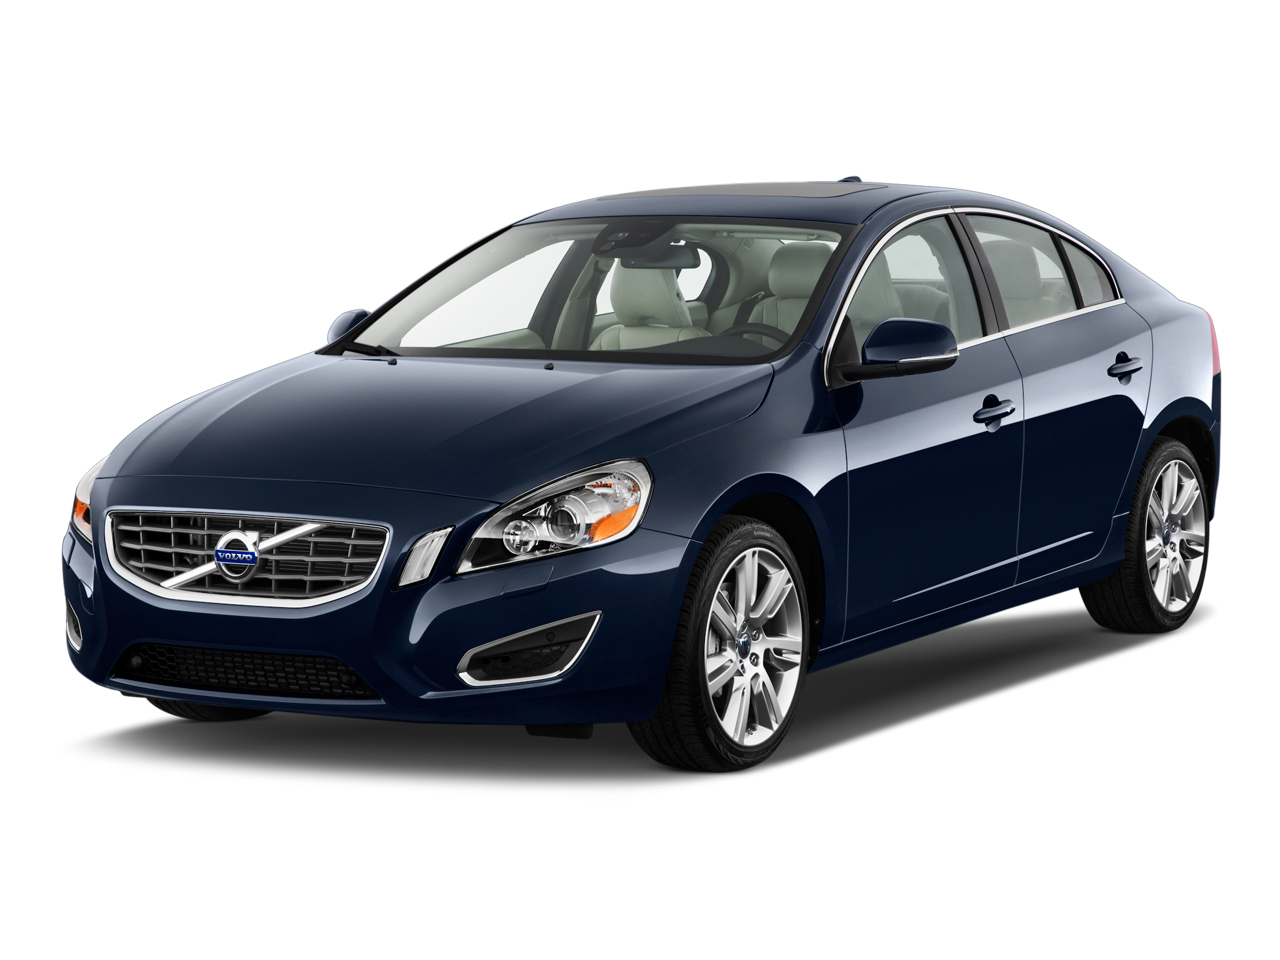 2012 Volvo S60 Review, Ratings, Specs, Prices, and Photos ...